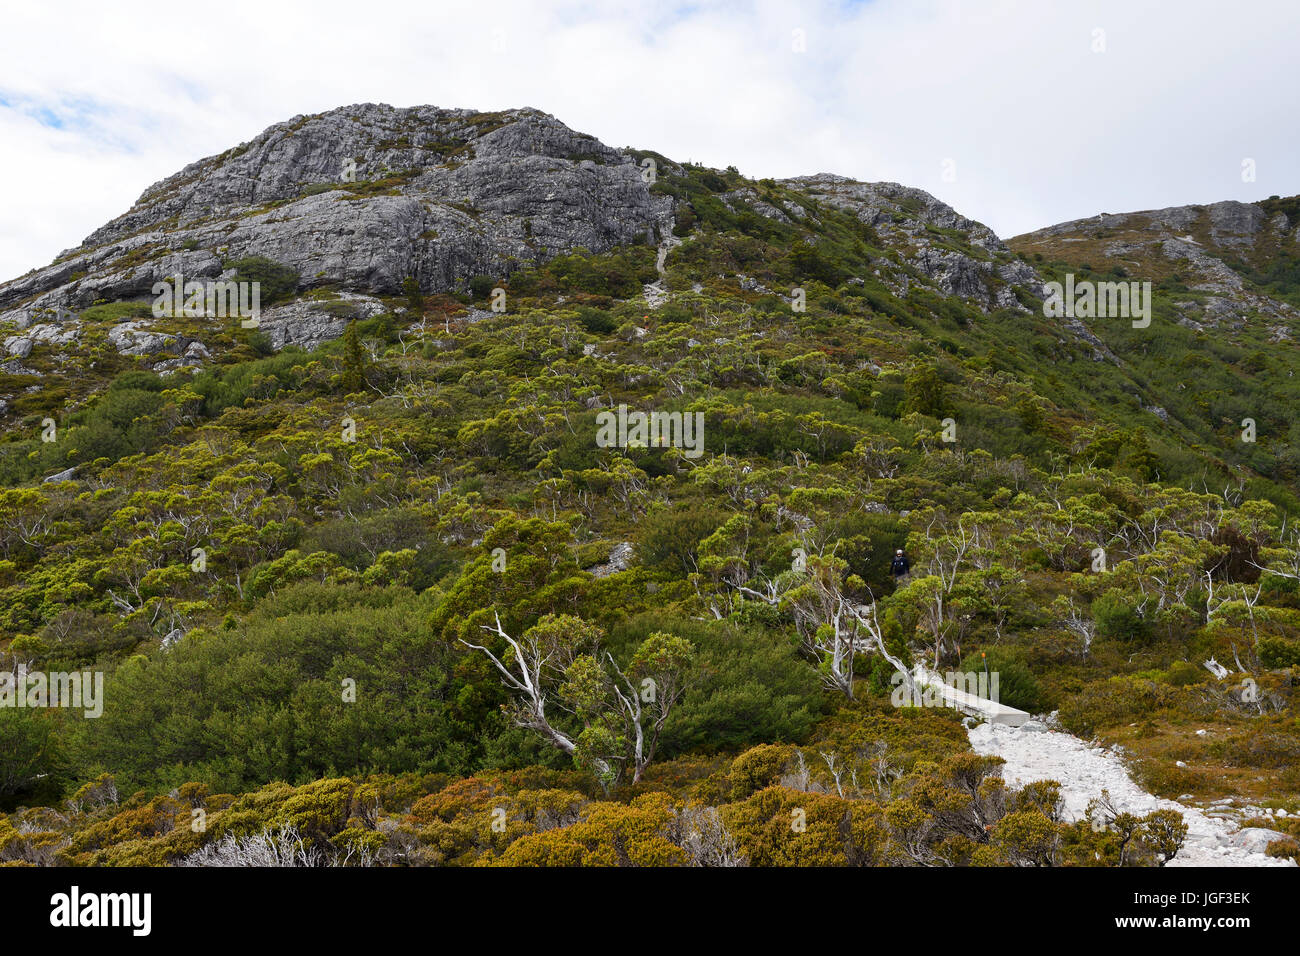 Overland track ascending to Marions Lookout, Cradle Mountain-Lake St Clair National Park, Tasmania, Australia - Stock Image